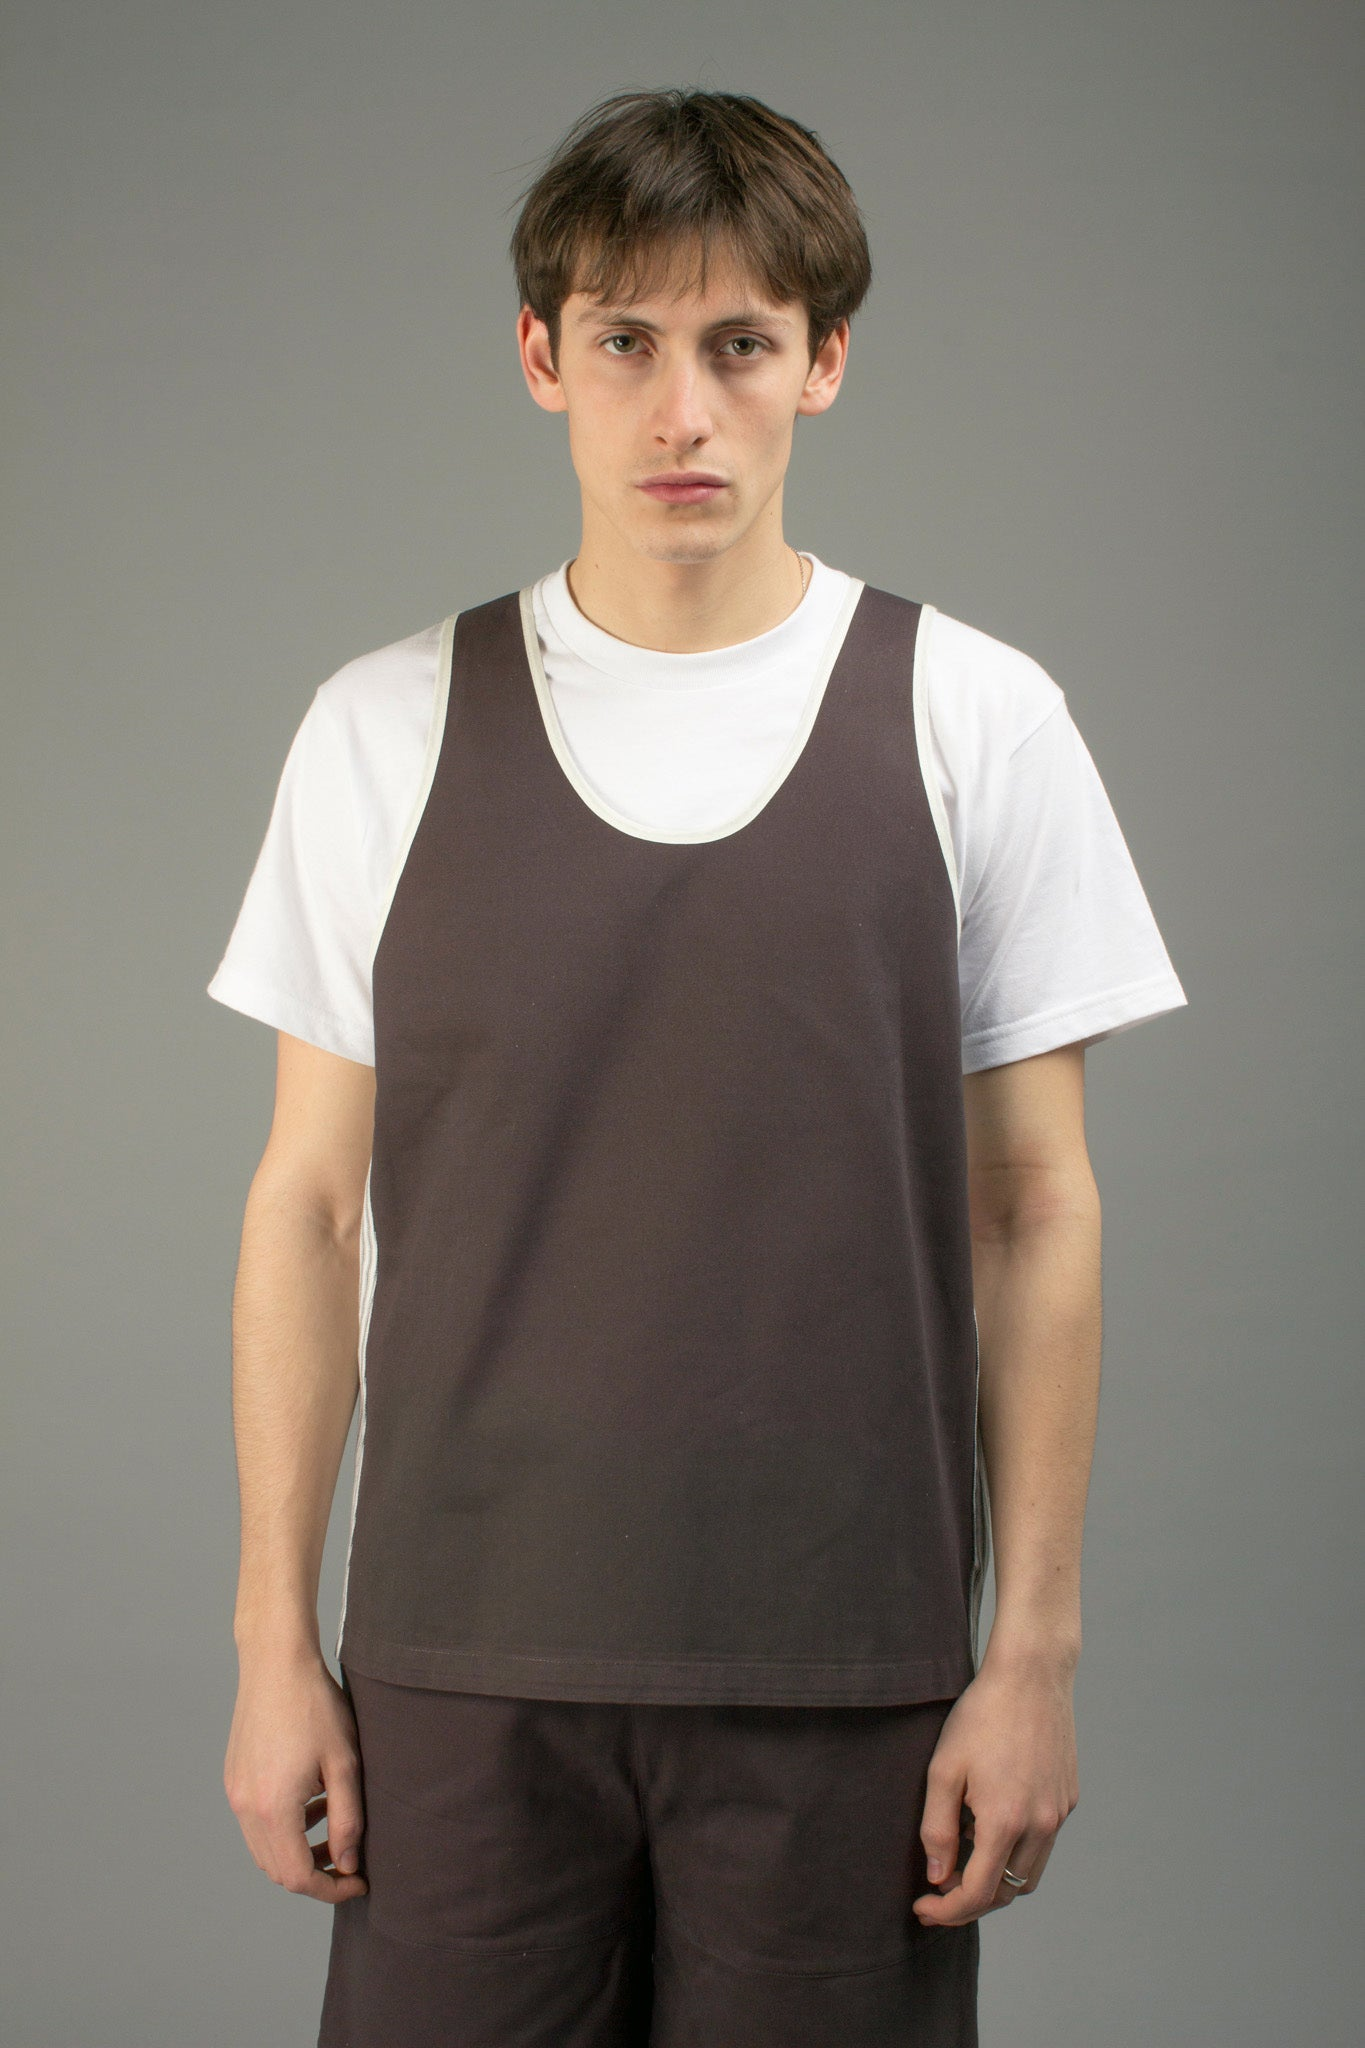 TWILL ANTHRACITE BASKETBALL JERSEY